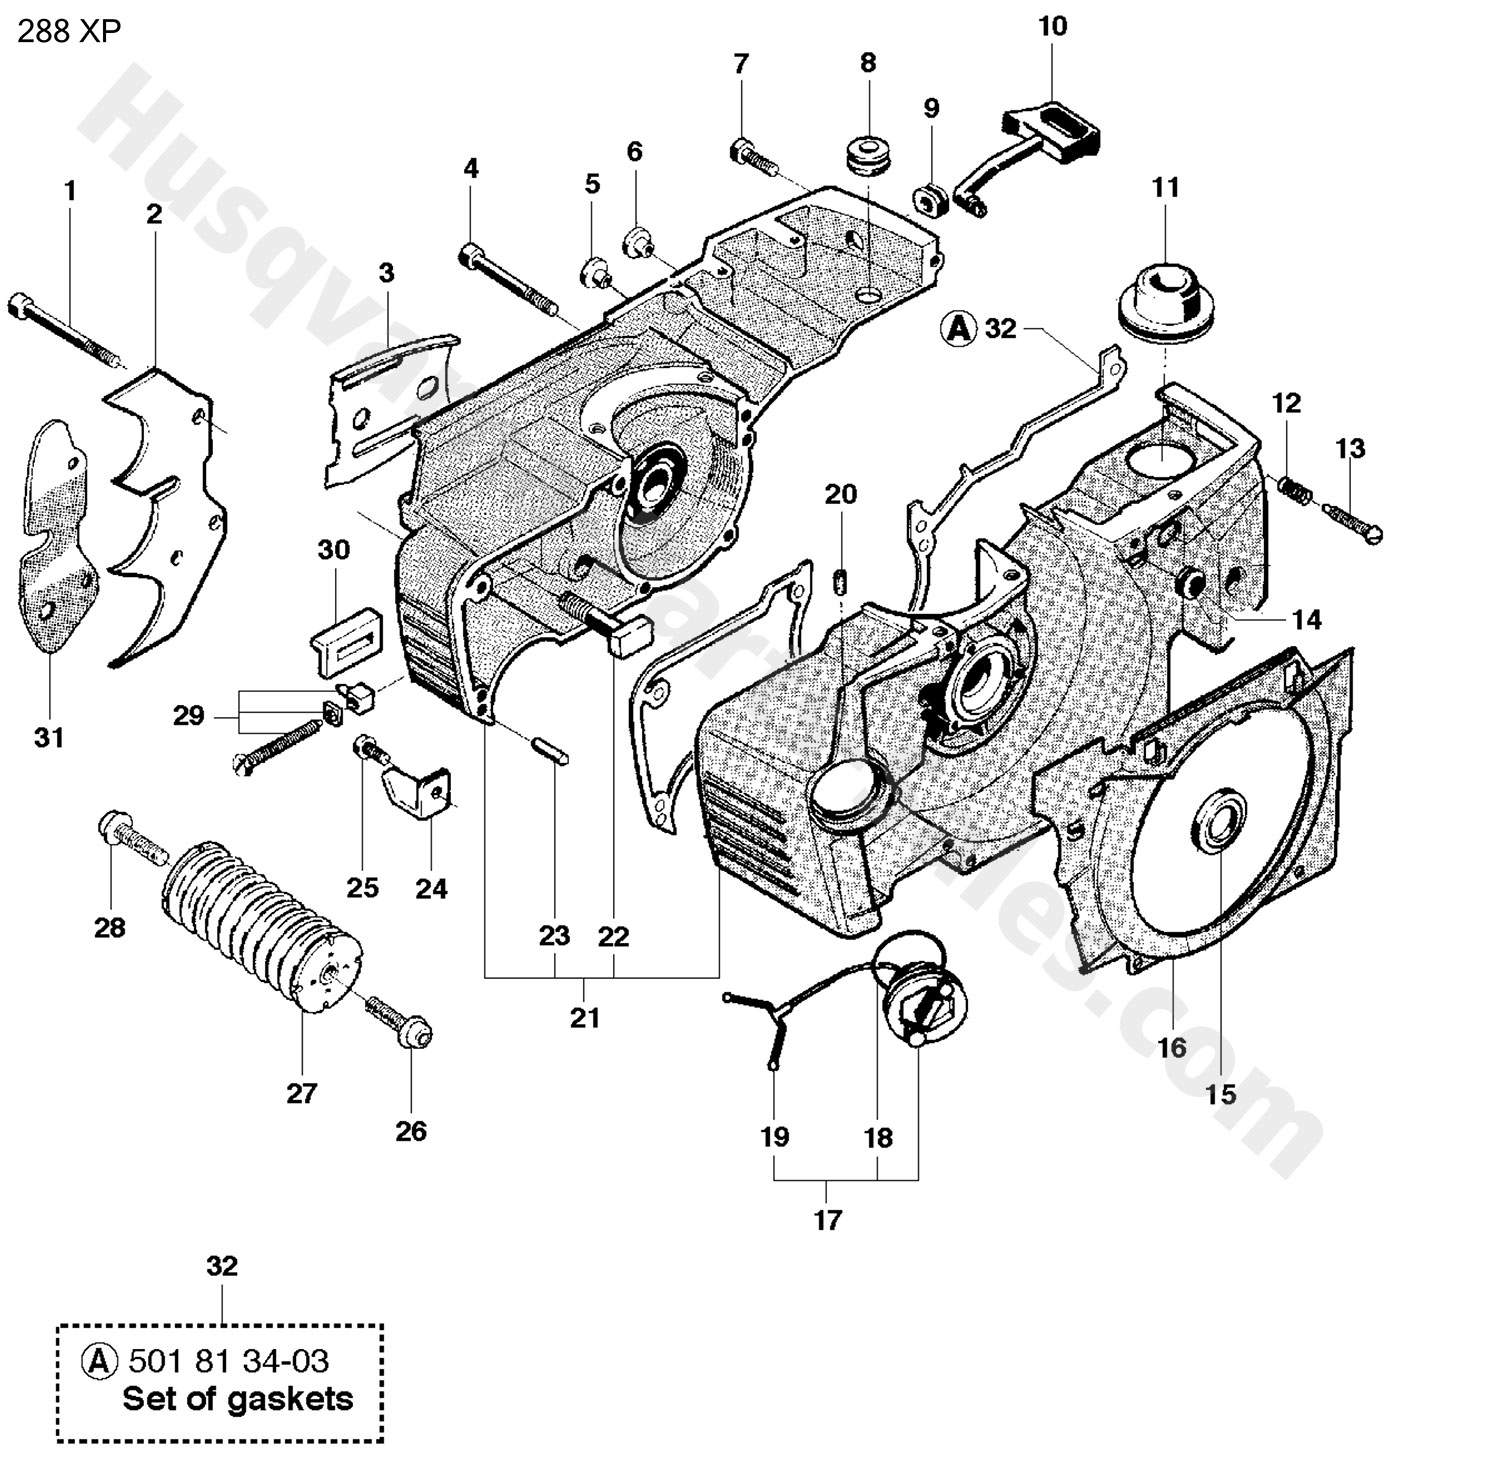 Sears Chainsaw Parts Diagram